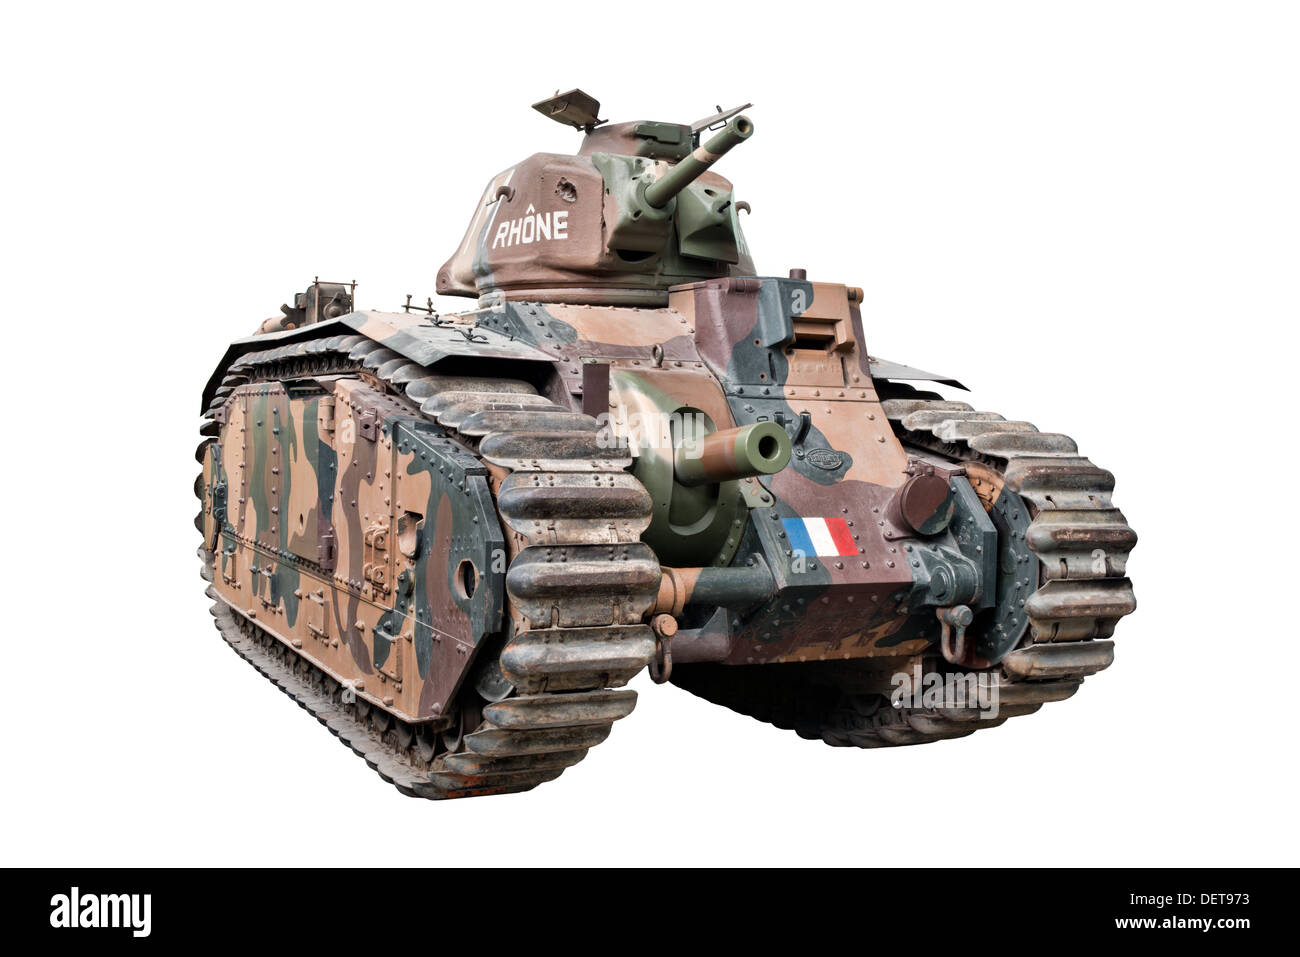 A cut out of a Renault B1 Bis Heavy Battle Tank used by French Forces at the outbreak of WW2 - Stock Image